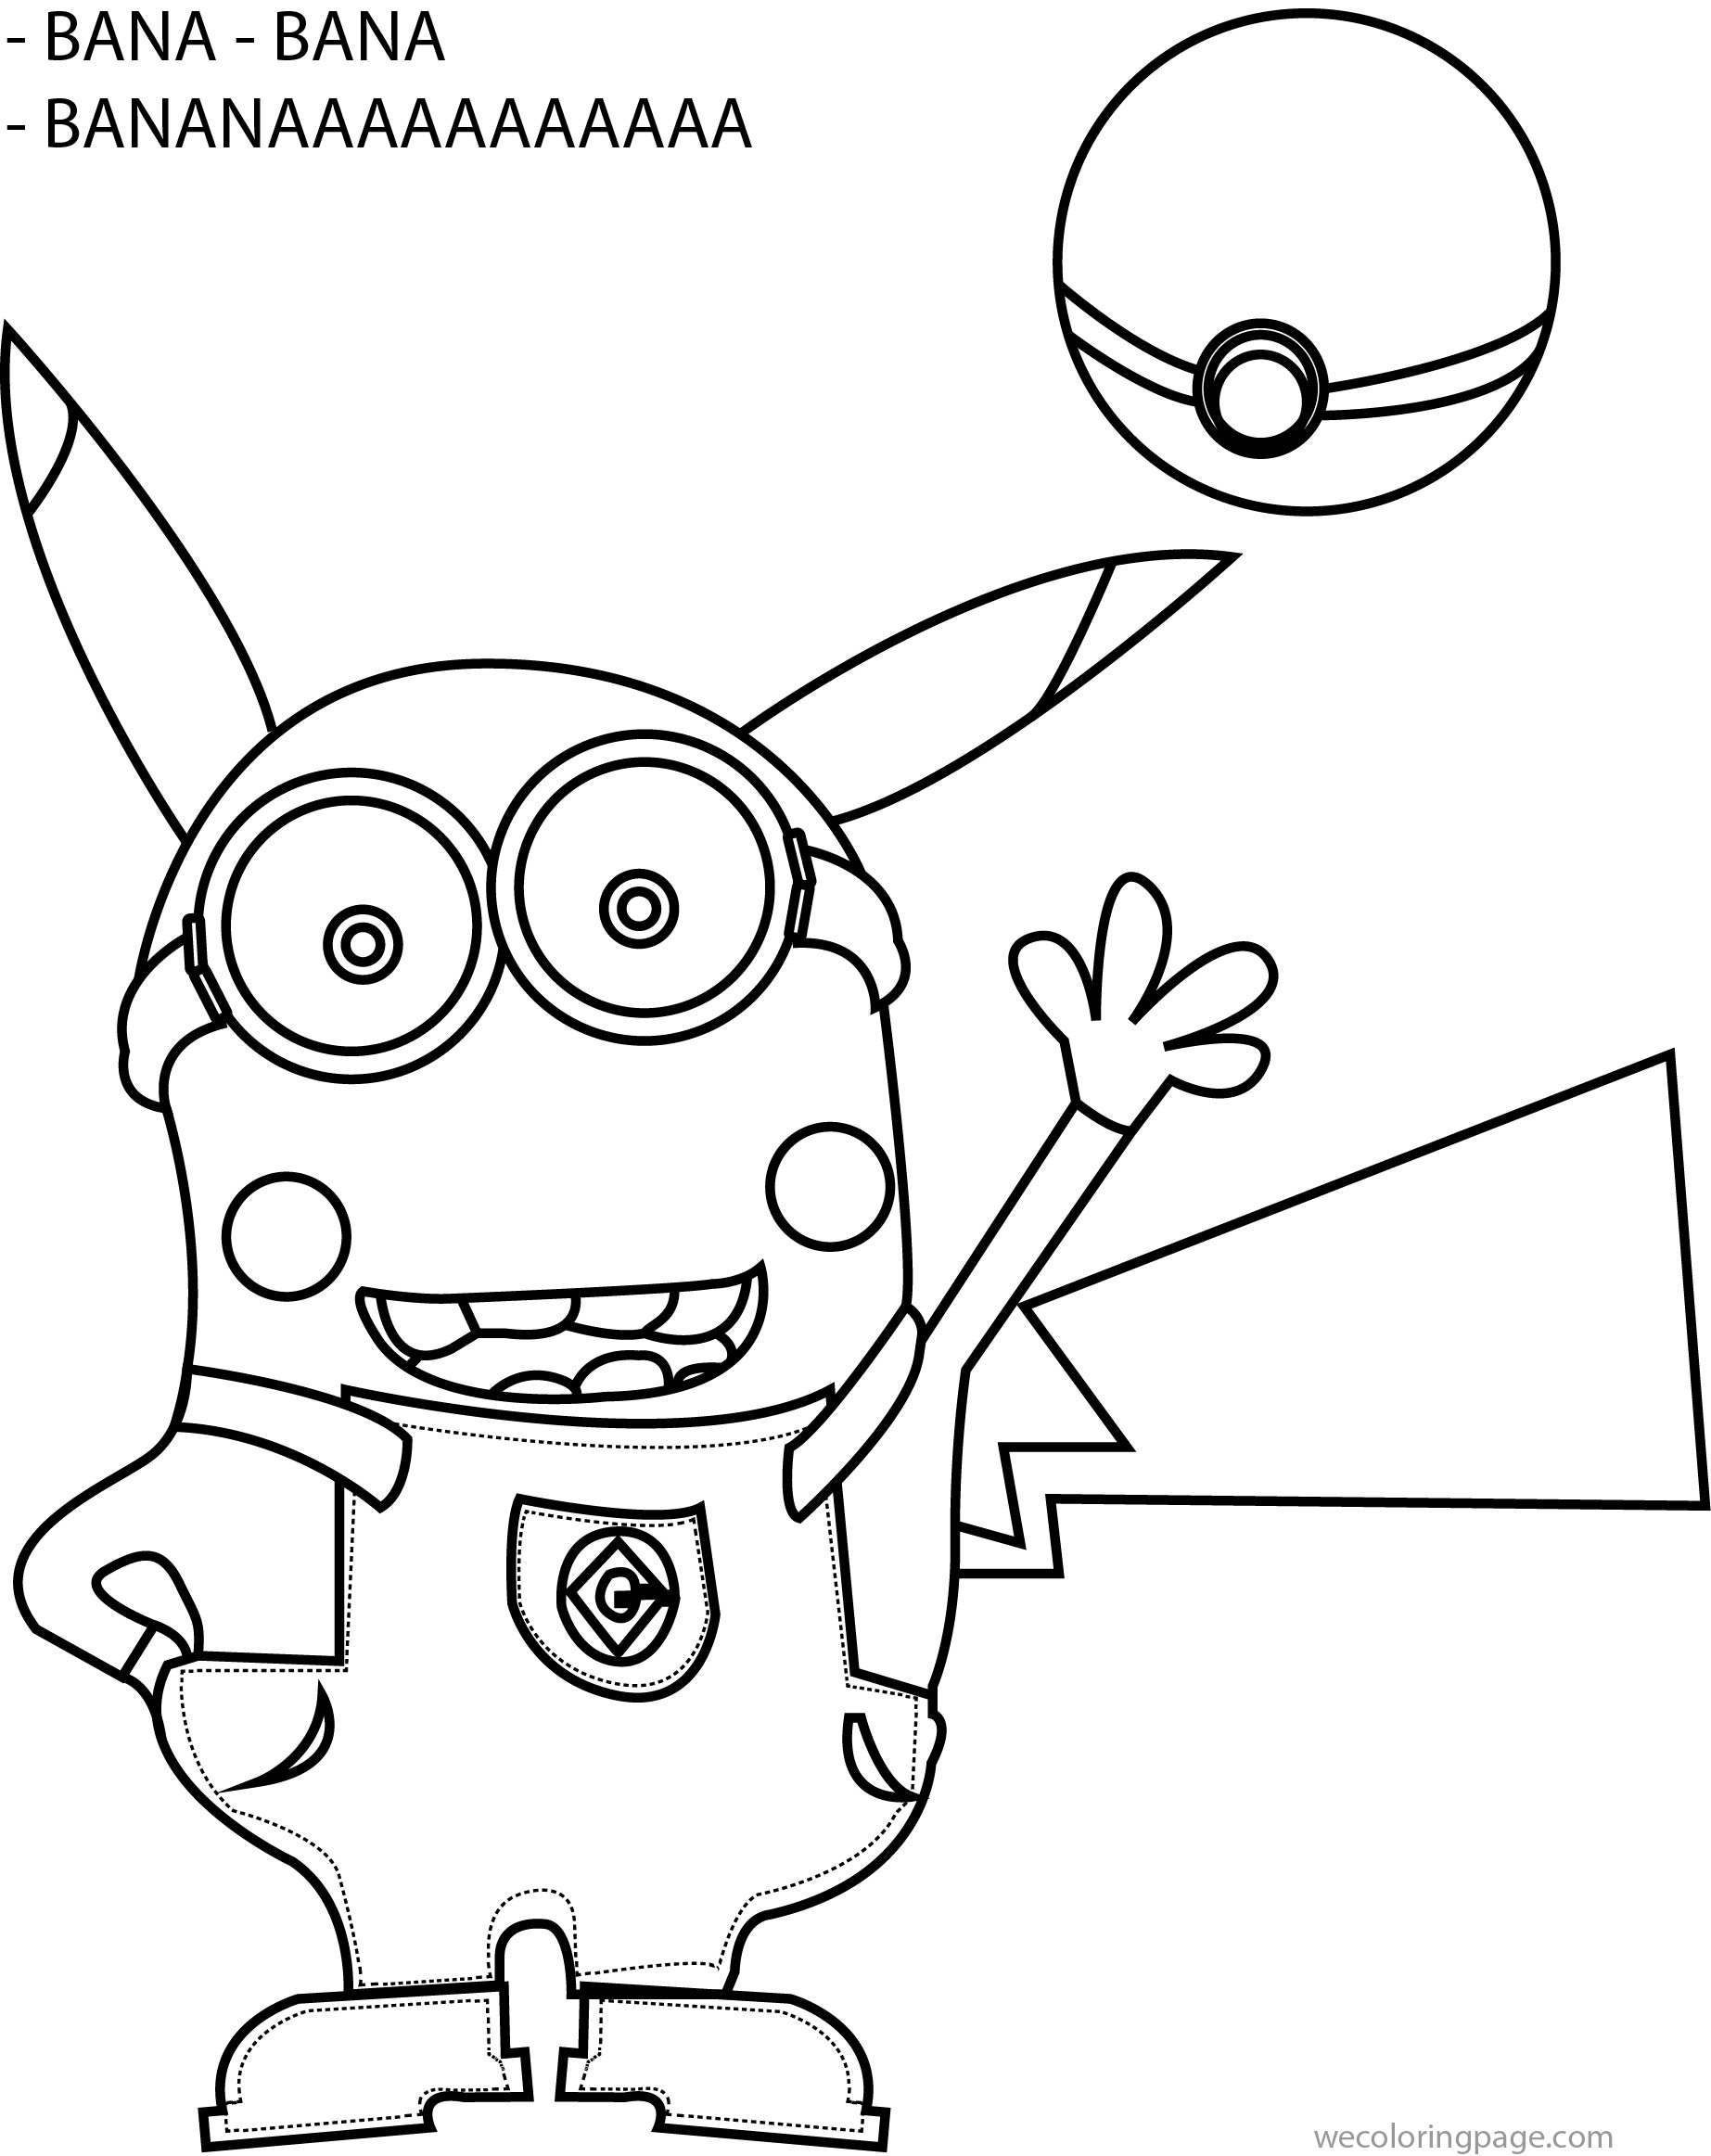 minions coloring pages banana split - photo#26